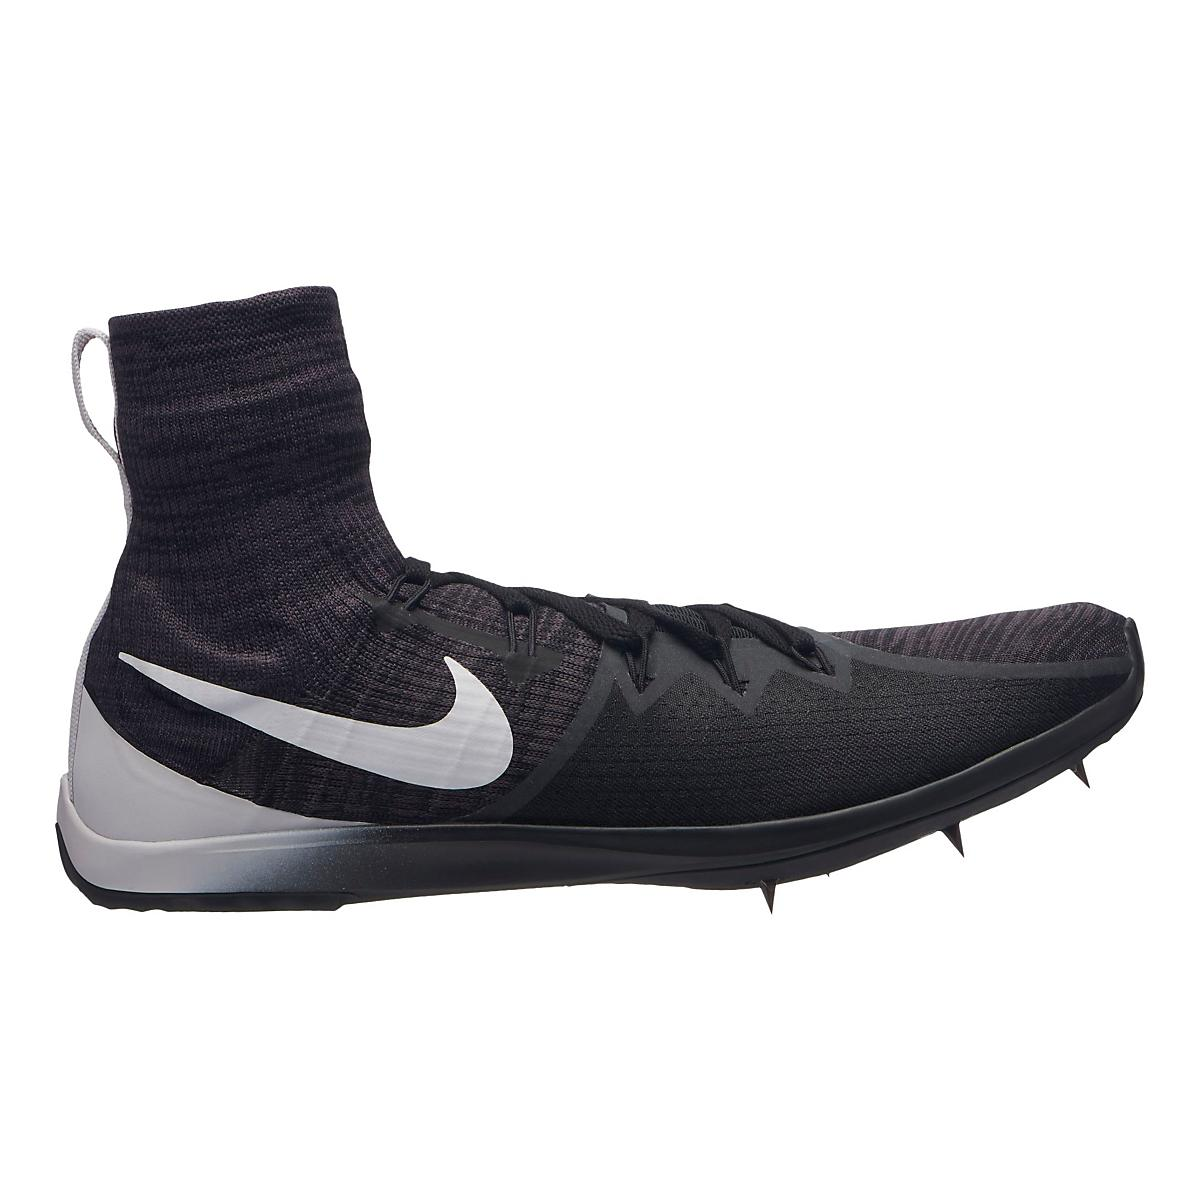 promo code 09e5a 08cc6 Nike Zoom Victory XC 4 Cross Country Shoe at Road Runner Sports